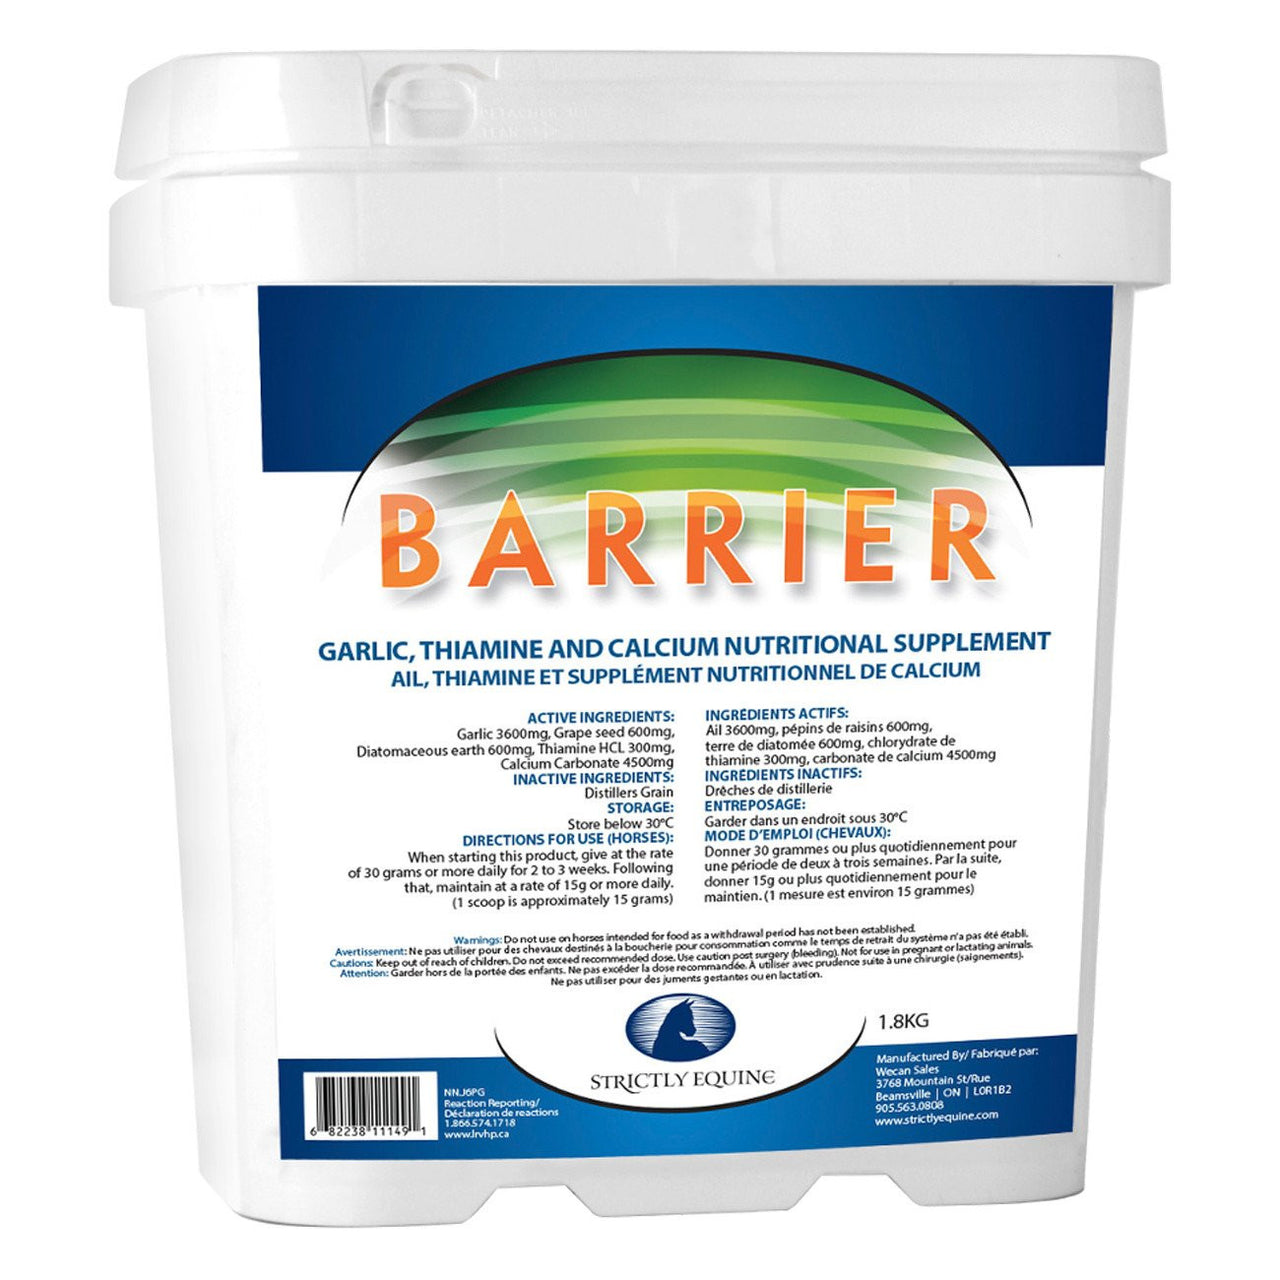 Strictly Equine Barrier 1.8Kg - Equine Supplements Strictly Equine - Canada